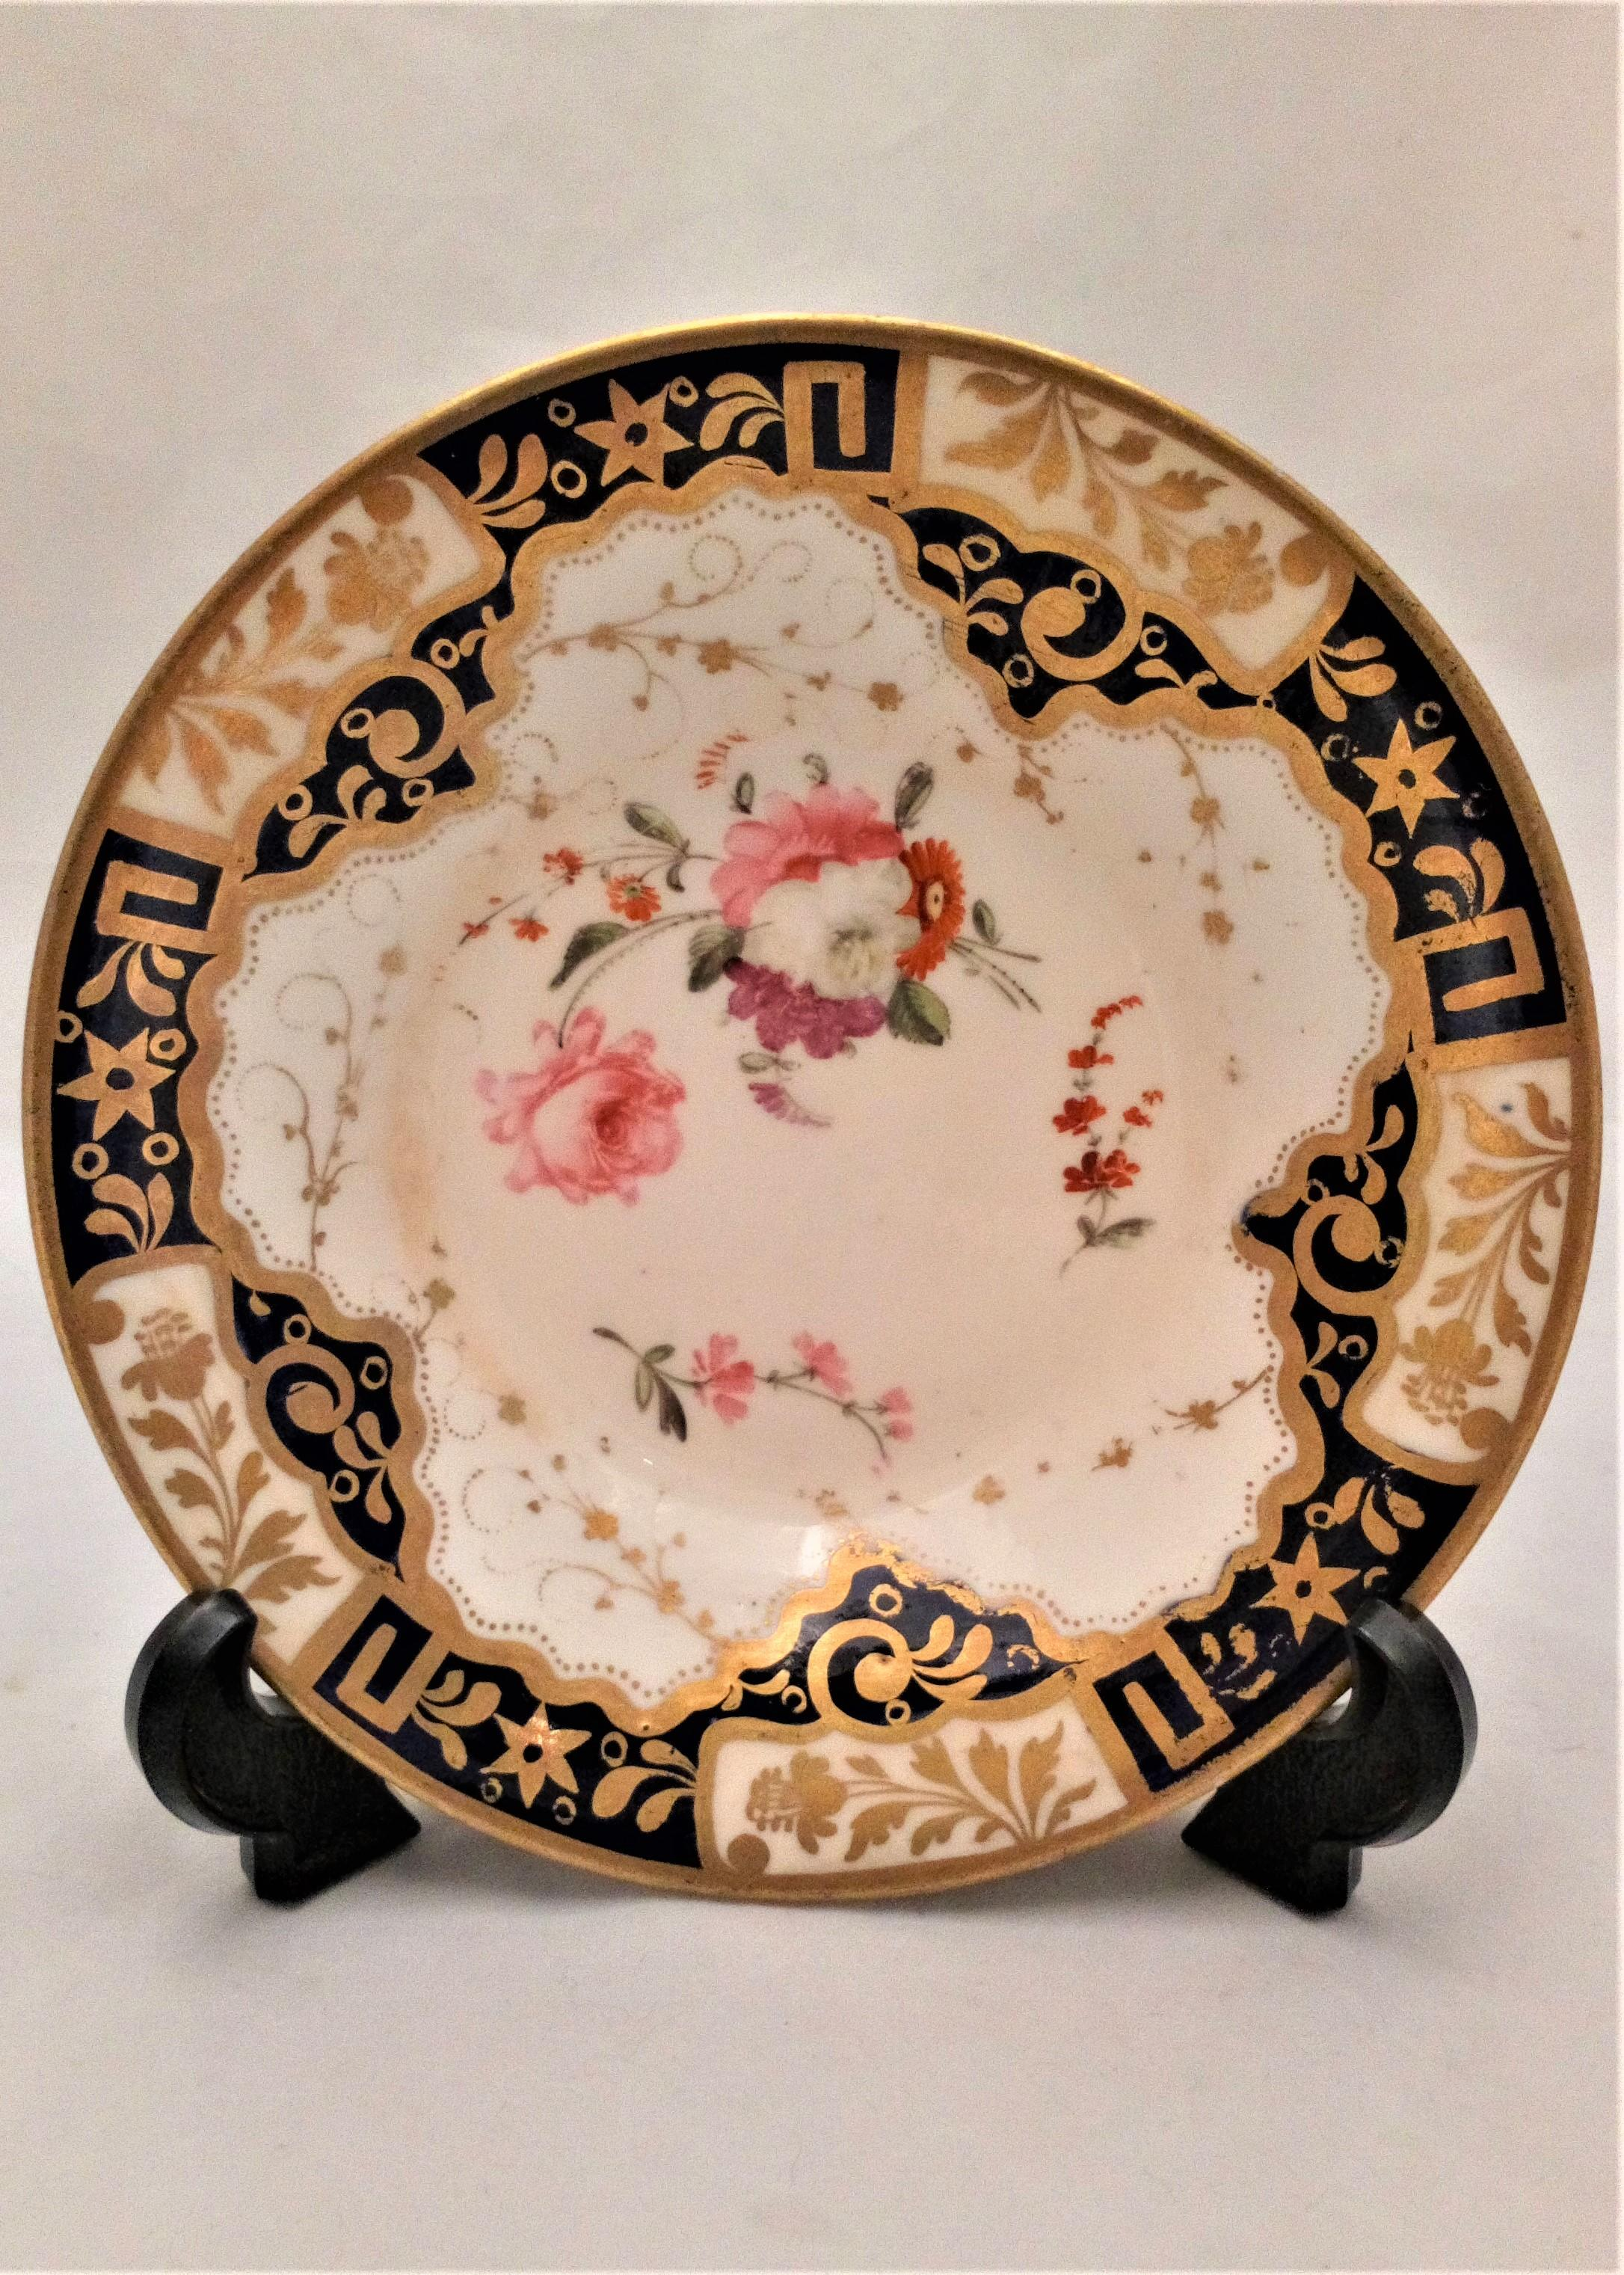 Antique Regency Porcelain Hand Painted Saucer Pattern 812 attributed to Yates circa 1820